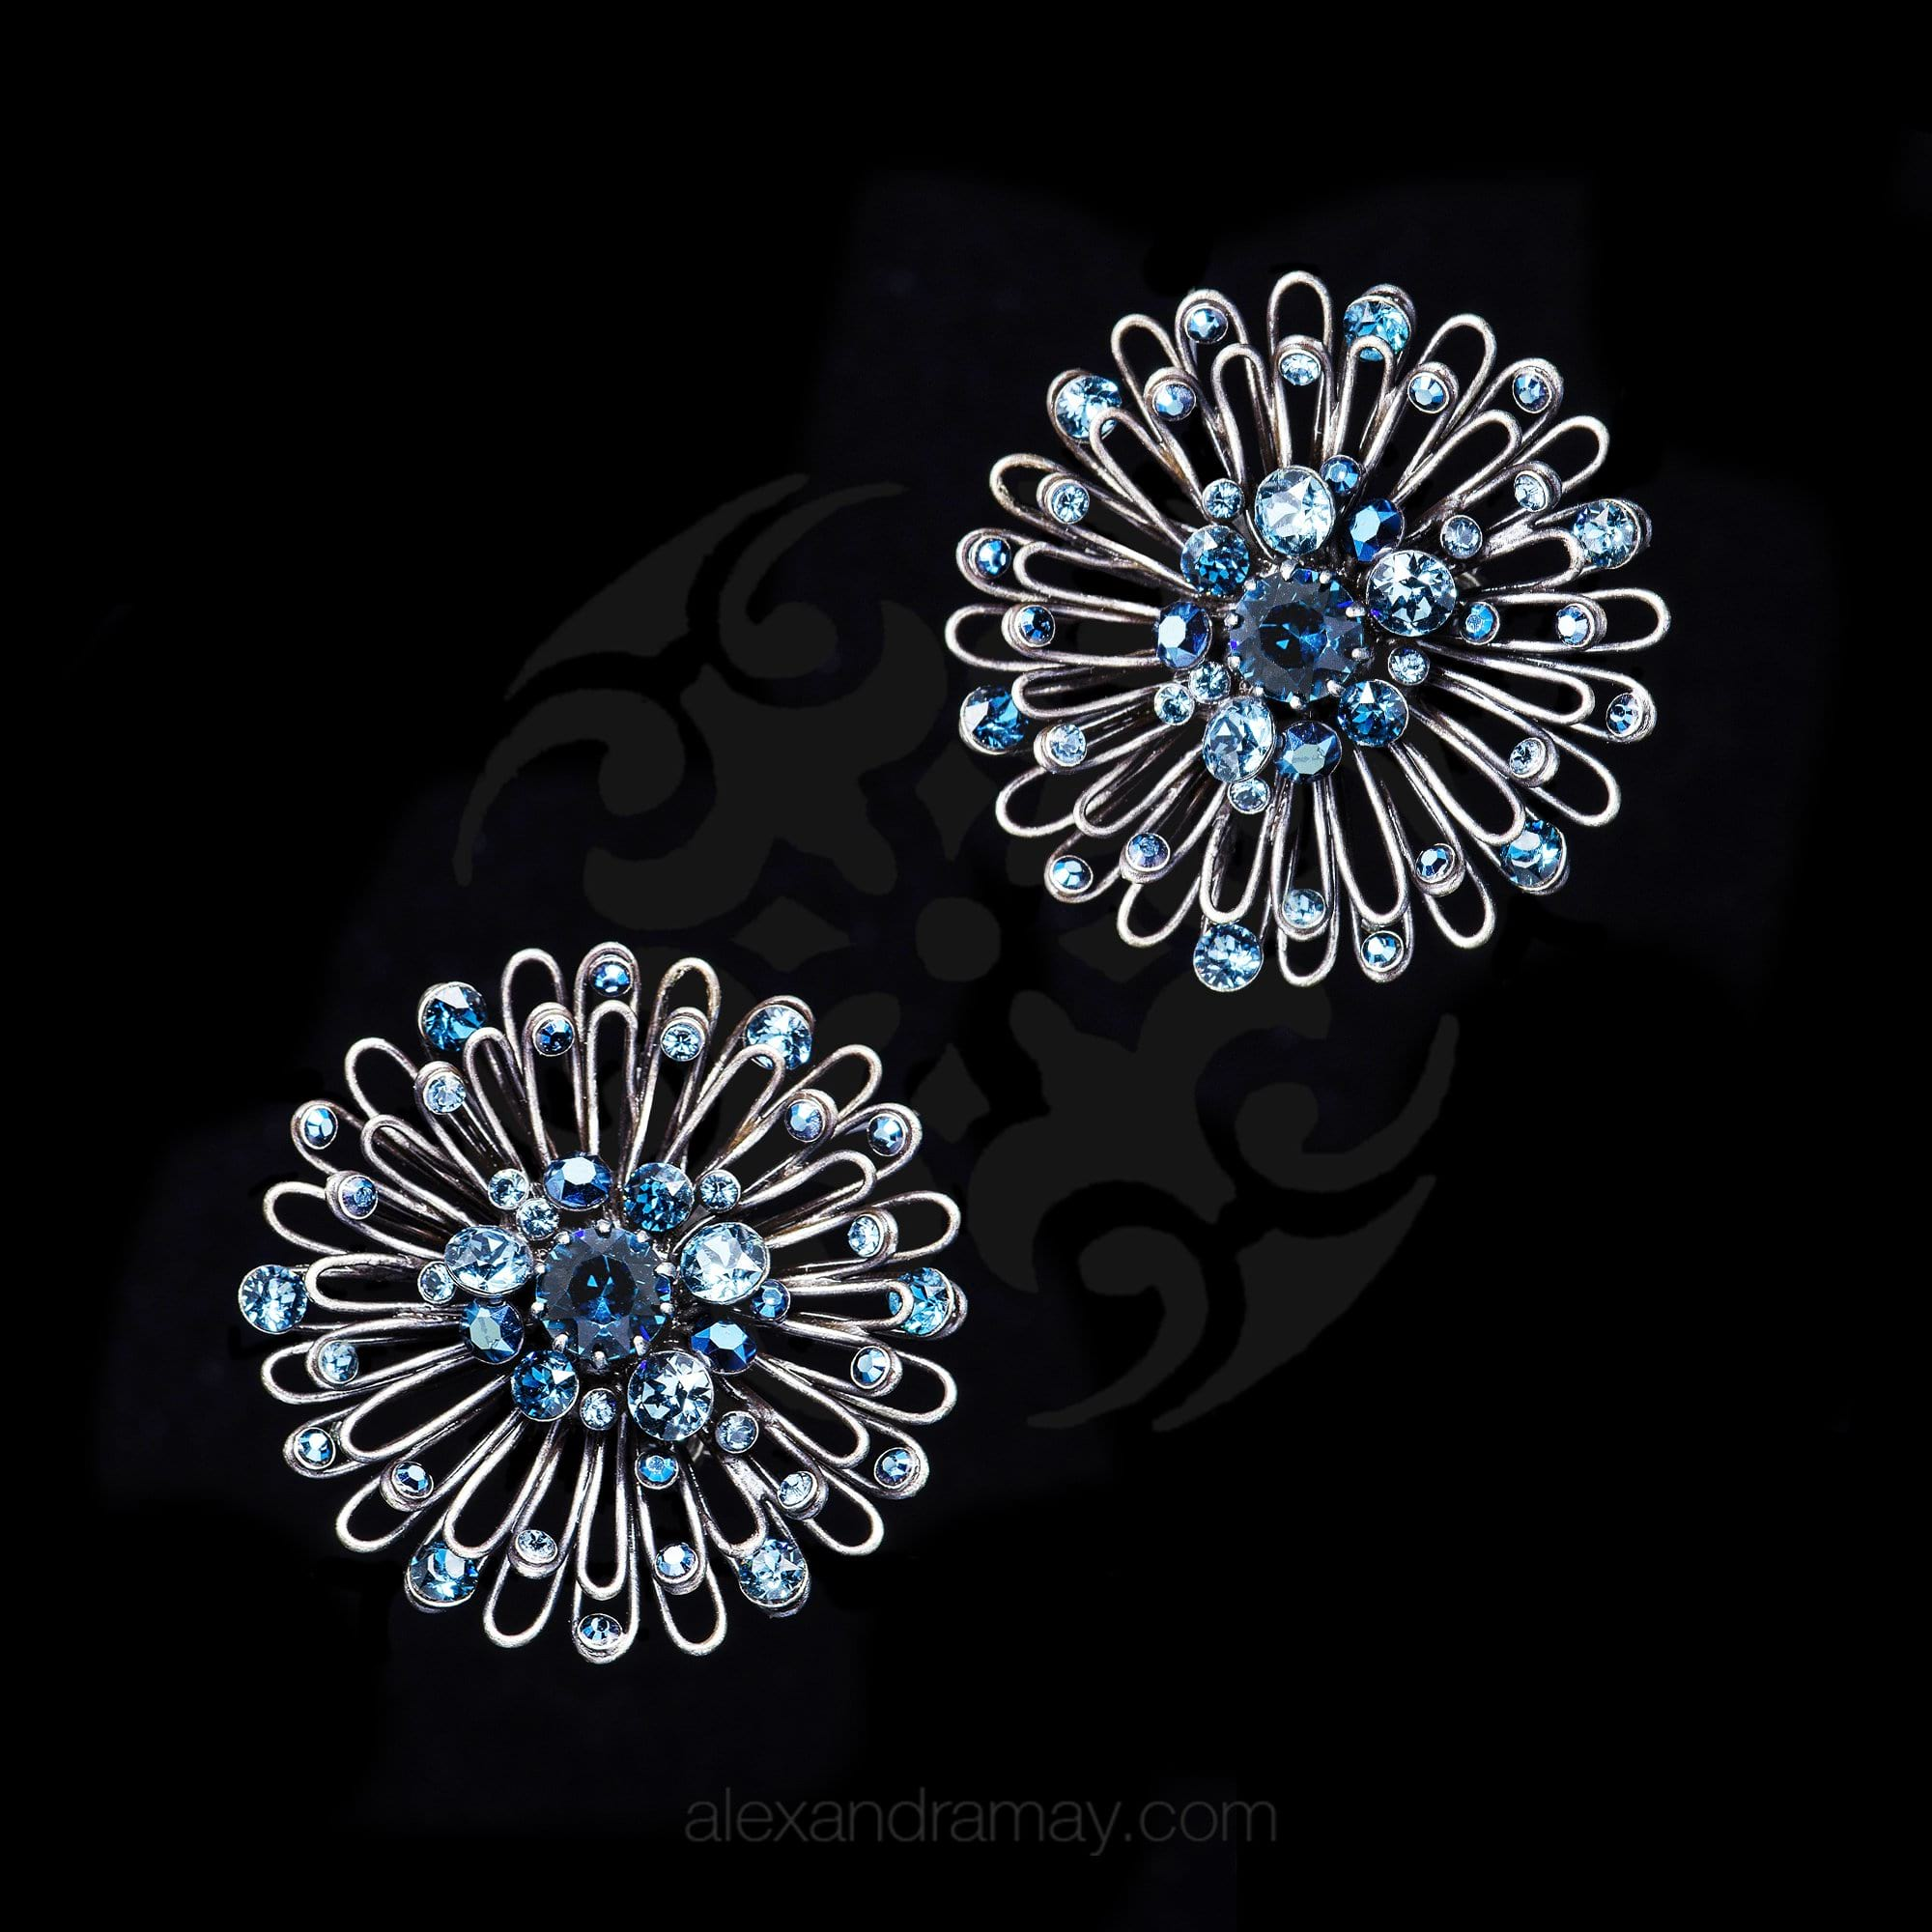 Konplott 'Distel' Ice Blue Swarovski Stud Pierced Earrings (628523)